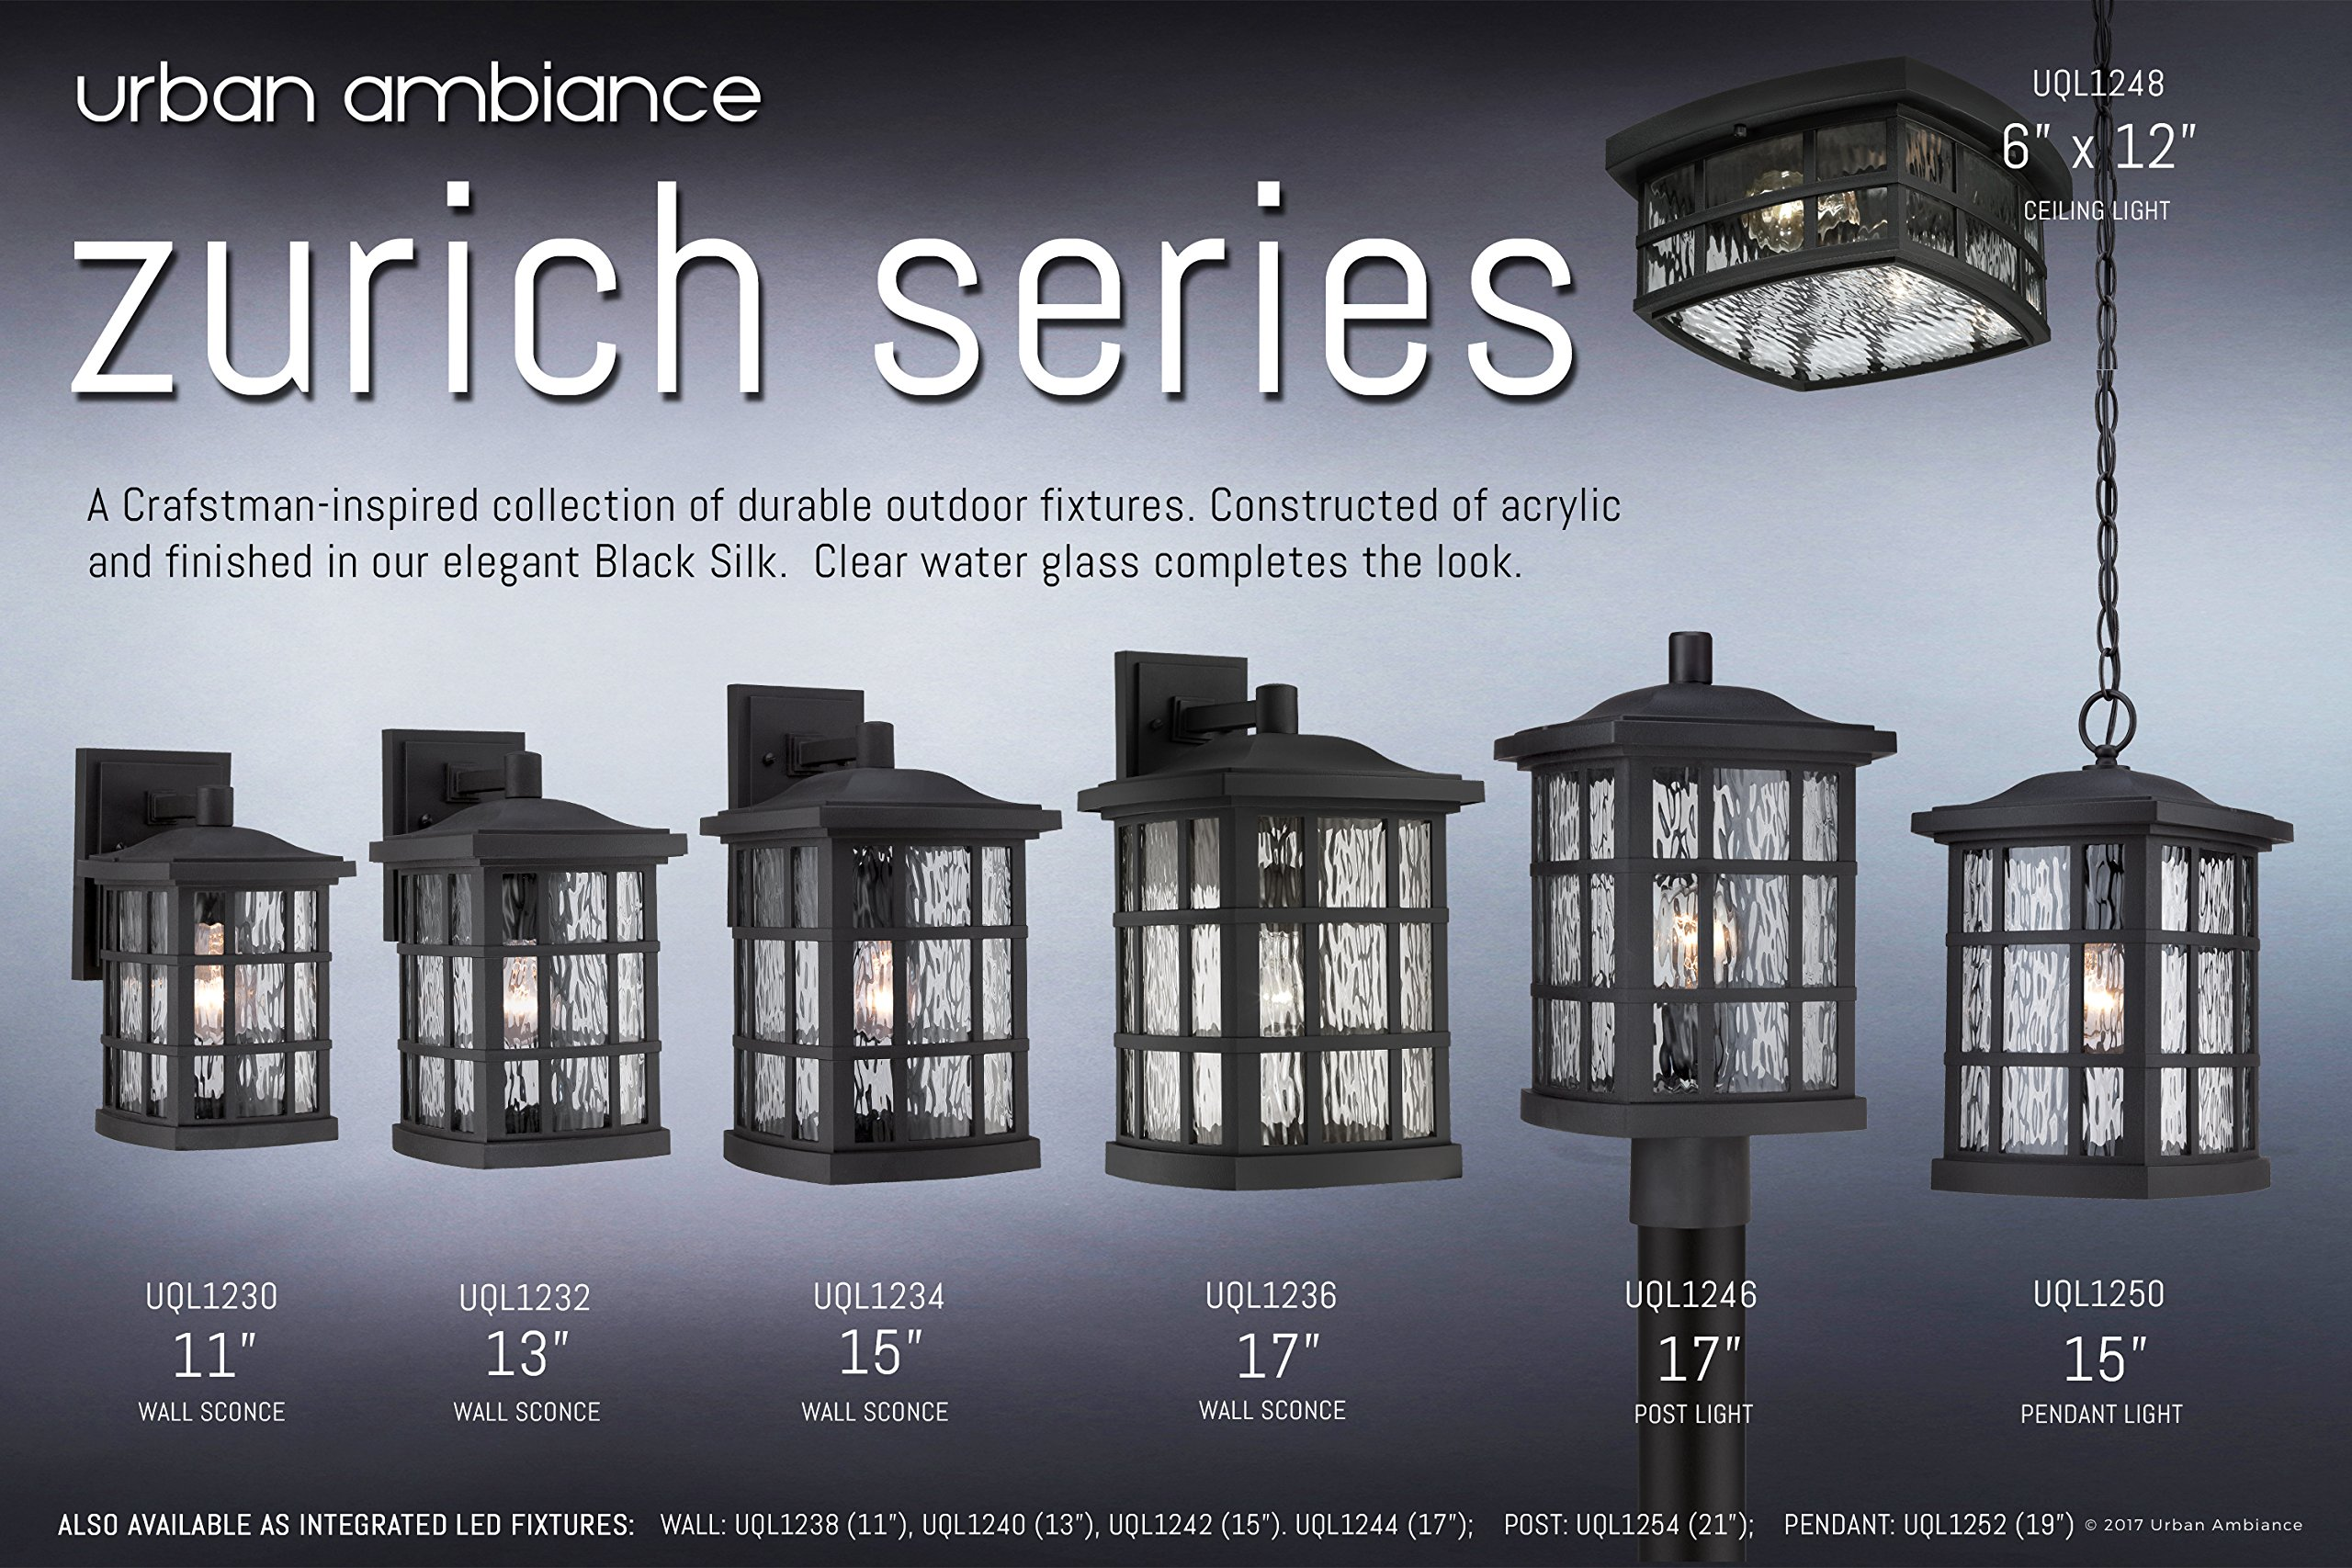 Luxury Craftsman Outdoor Ceiling Light, Small Size: 5.75''H x 12''W, with Tudor Style Elements, Highly-Detailed Design, High-End Black Silk Finish and Water Glass, UQL1248 by Urban Ambiance by Urban Ambiance